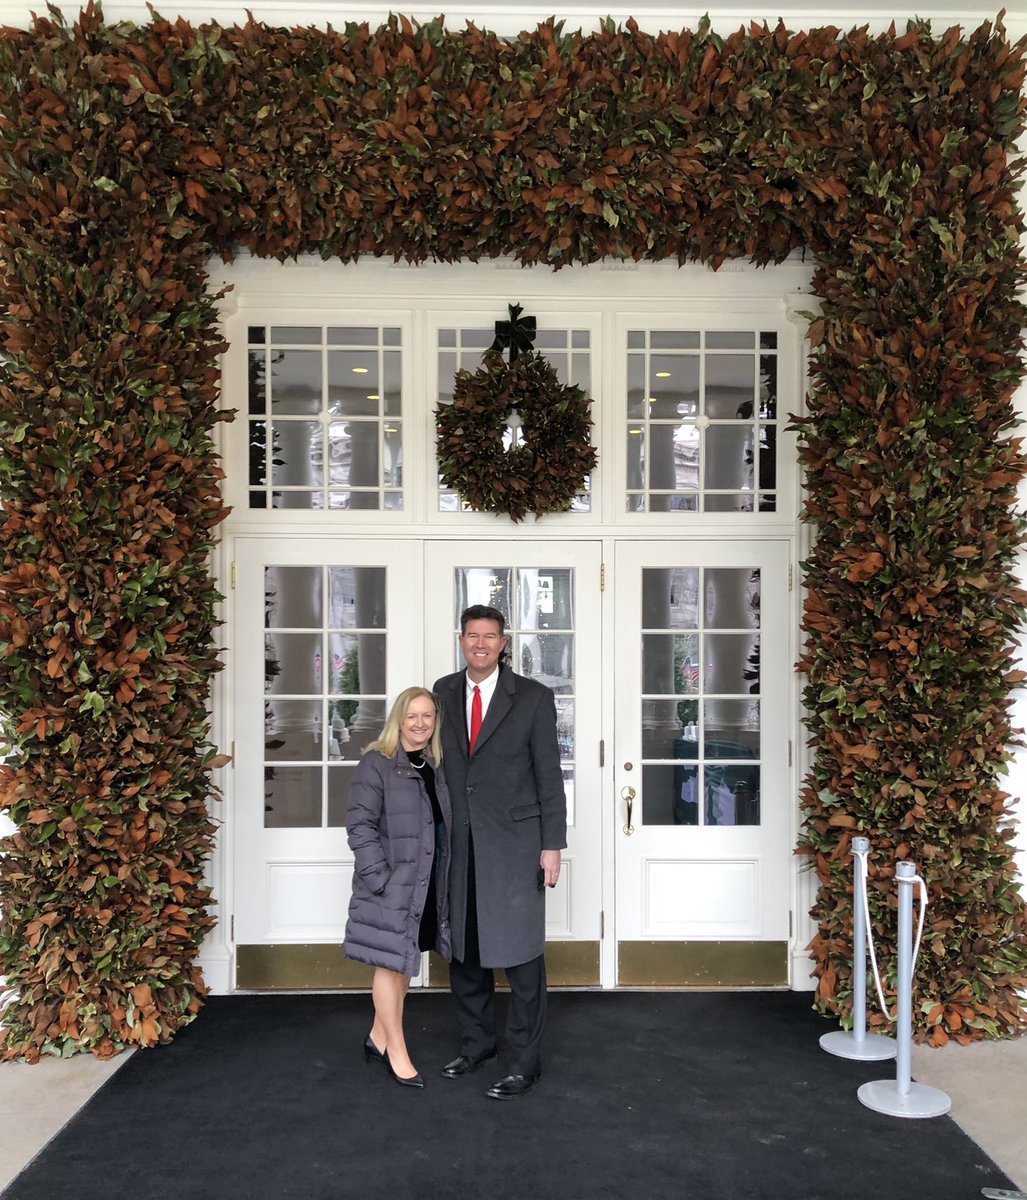 Yesterday, @CindyBMerrill and I had the unbelievable privilege to attend the last @WhiteHouse Christmas party of the 2020 season! We were honored to have been invited and to see our nation's executive mansion decorated to honor our Lord and Savior Jesus Christ! #WHChristmas